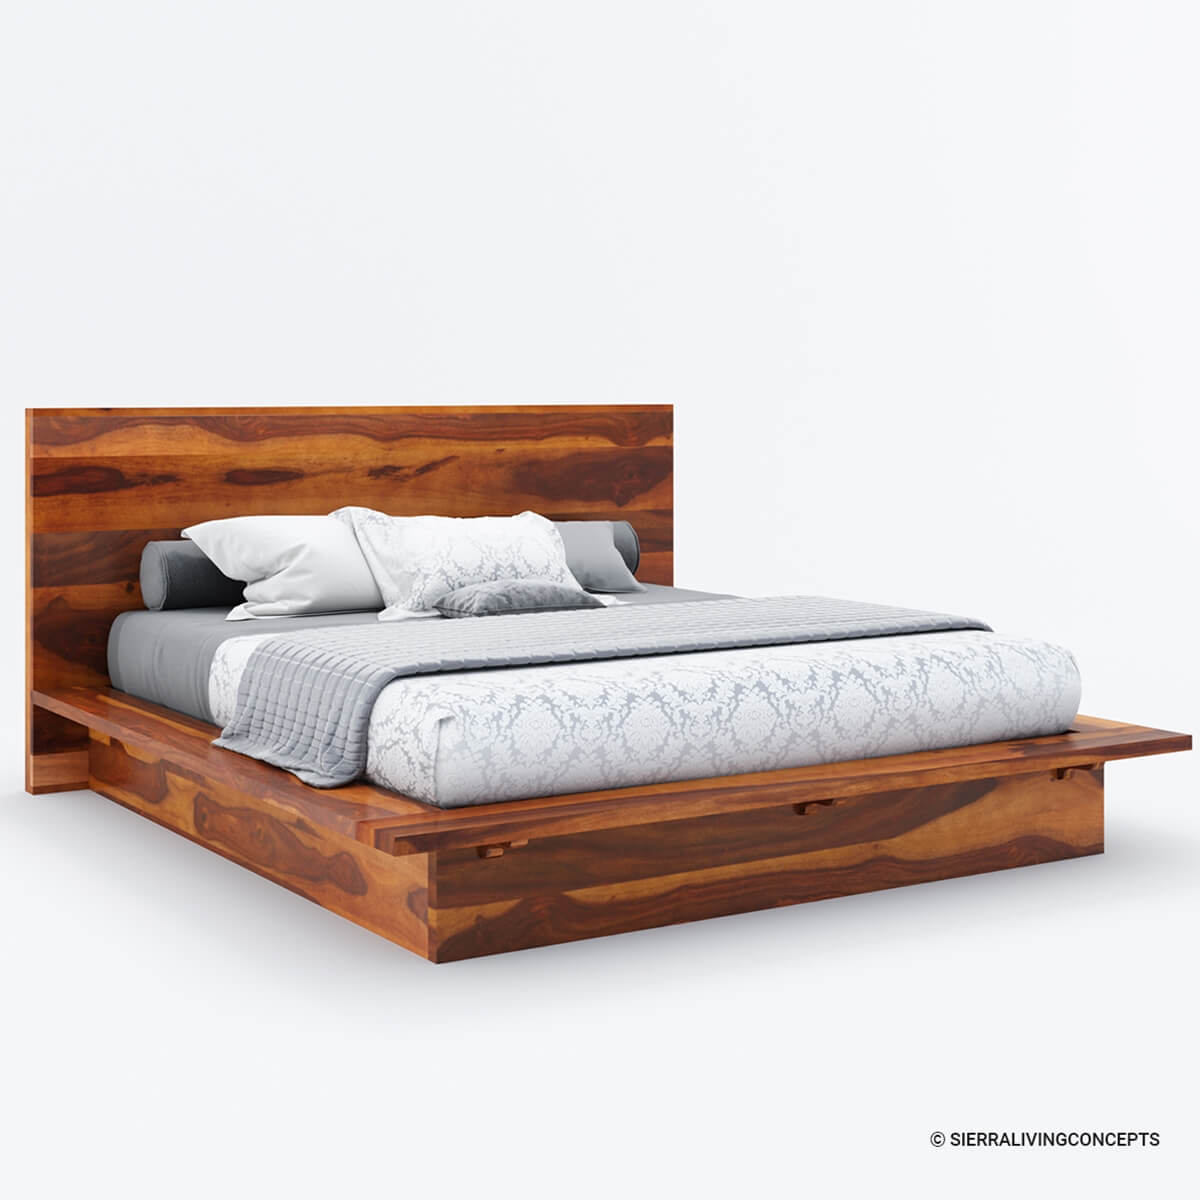 california king size solid wood platform bed frame. Black Bedroom Furniture Sets. Home Design Ideas